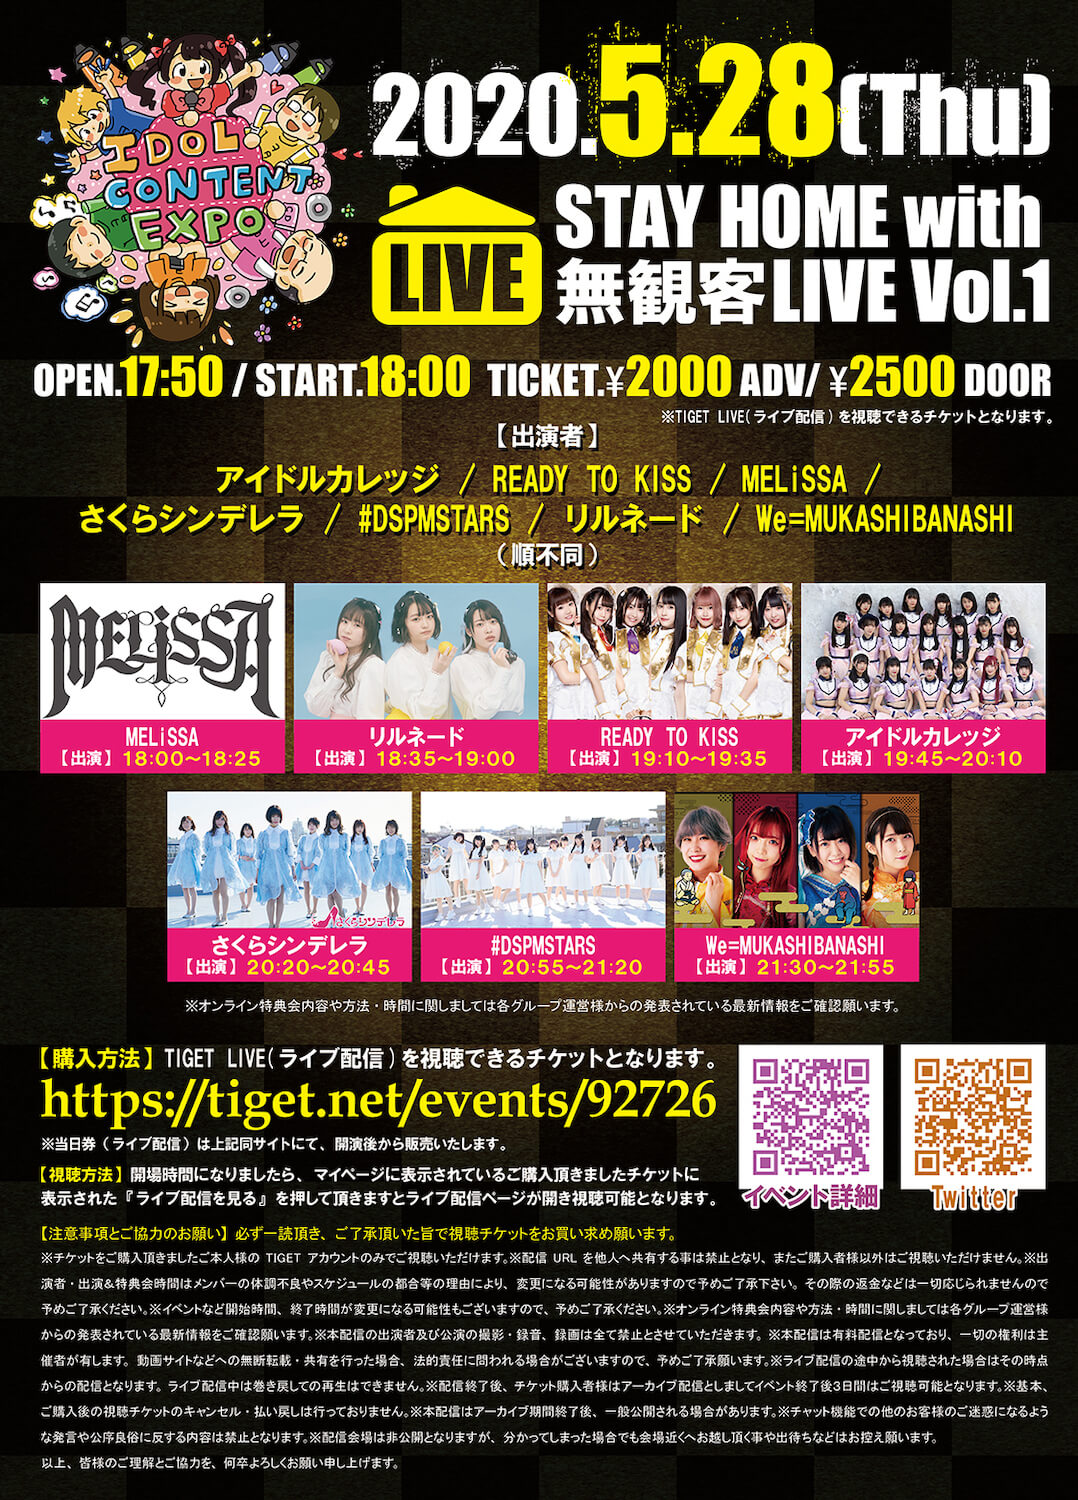 『 IDOL CONTENT EXPO 〜 STAY HOME with 無観客 LIVE Vol.1〜』を5月28日(木)に開催決定!オンライン配信を実施サムネイル画像